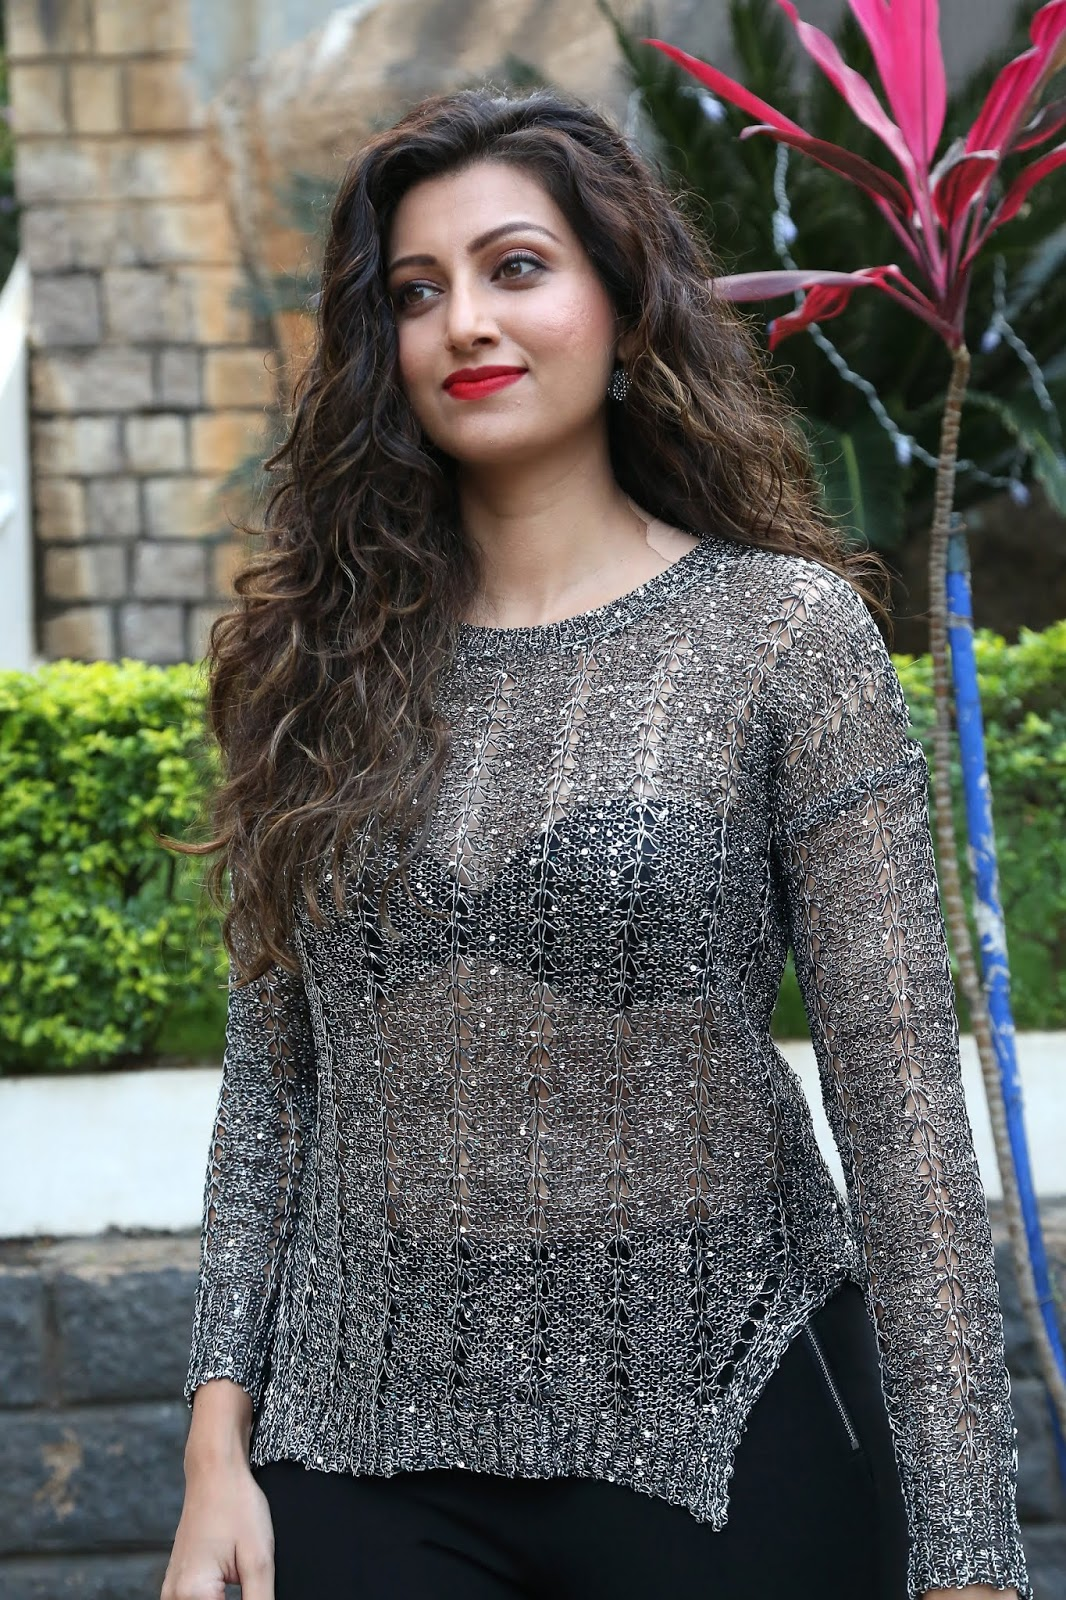 Beauty Galore Hd Hamsa Nandini New Photos In See Through